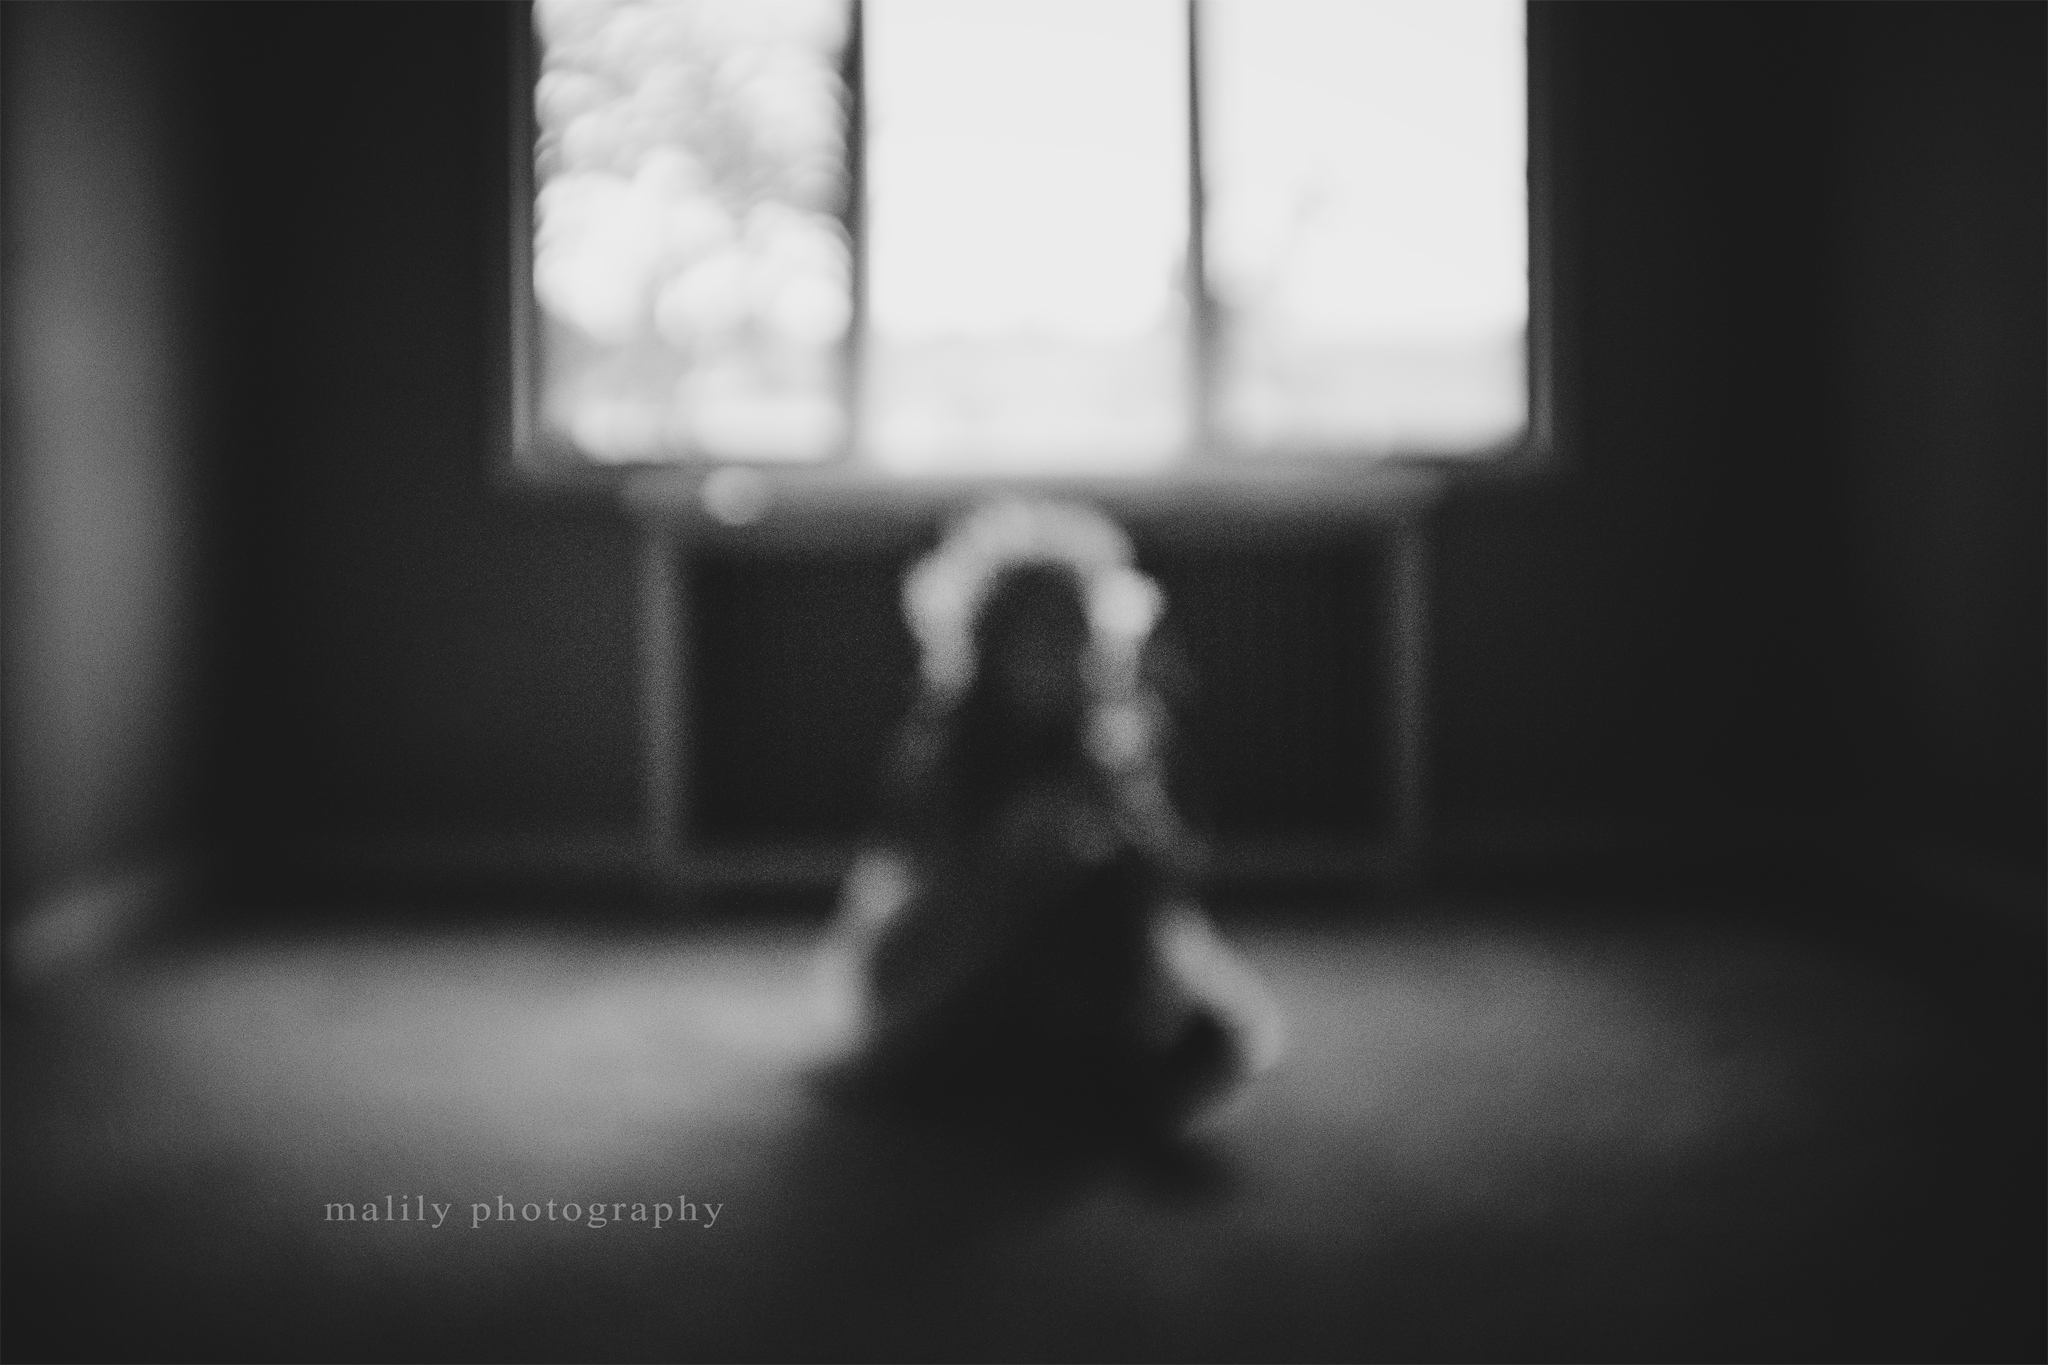 malily photography | schuylkill haven, pa child photography